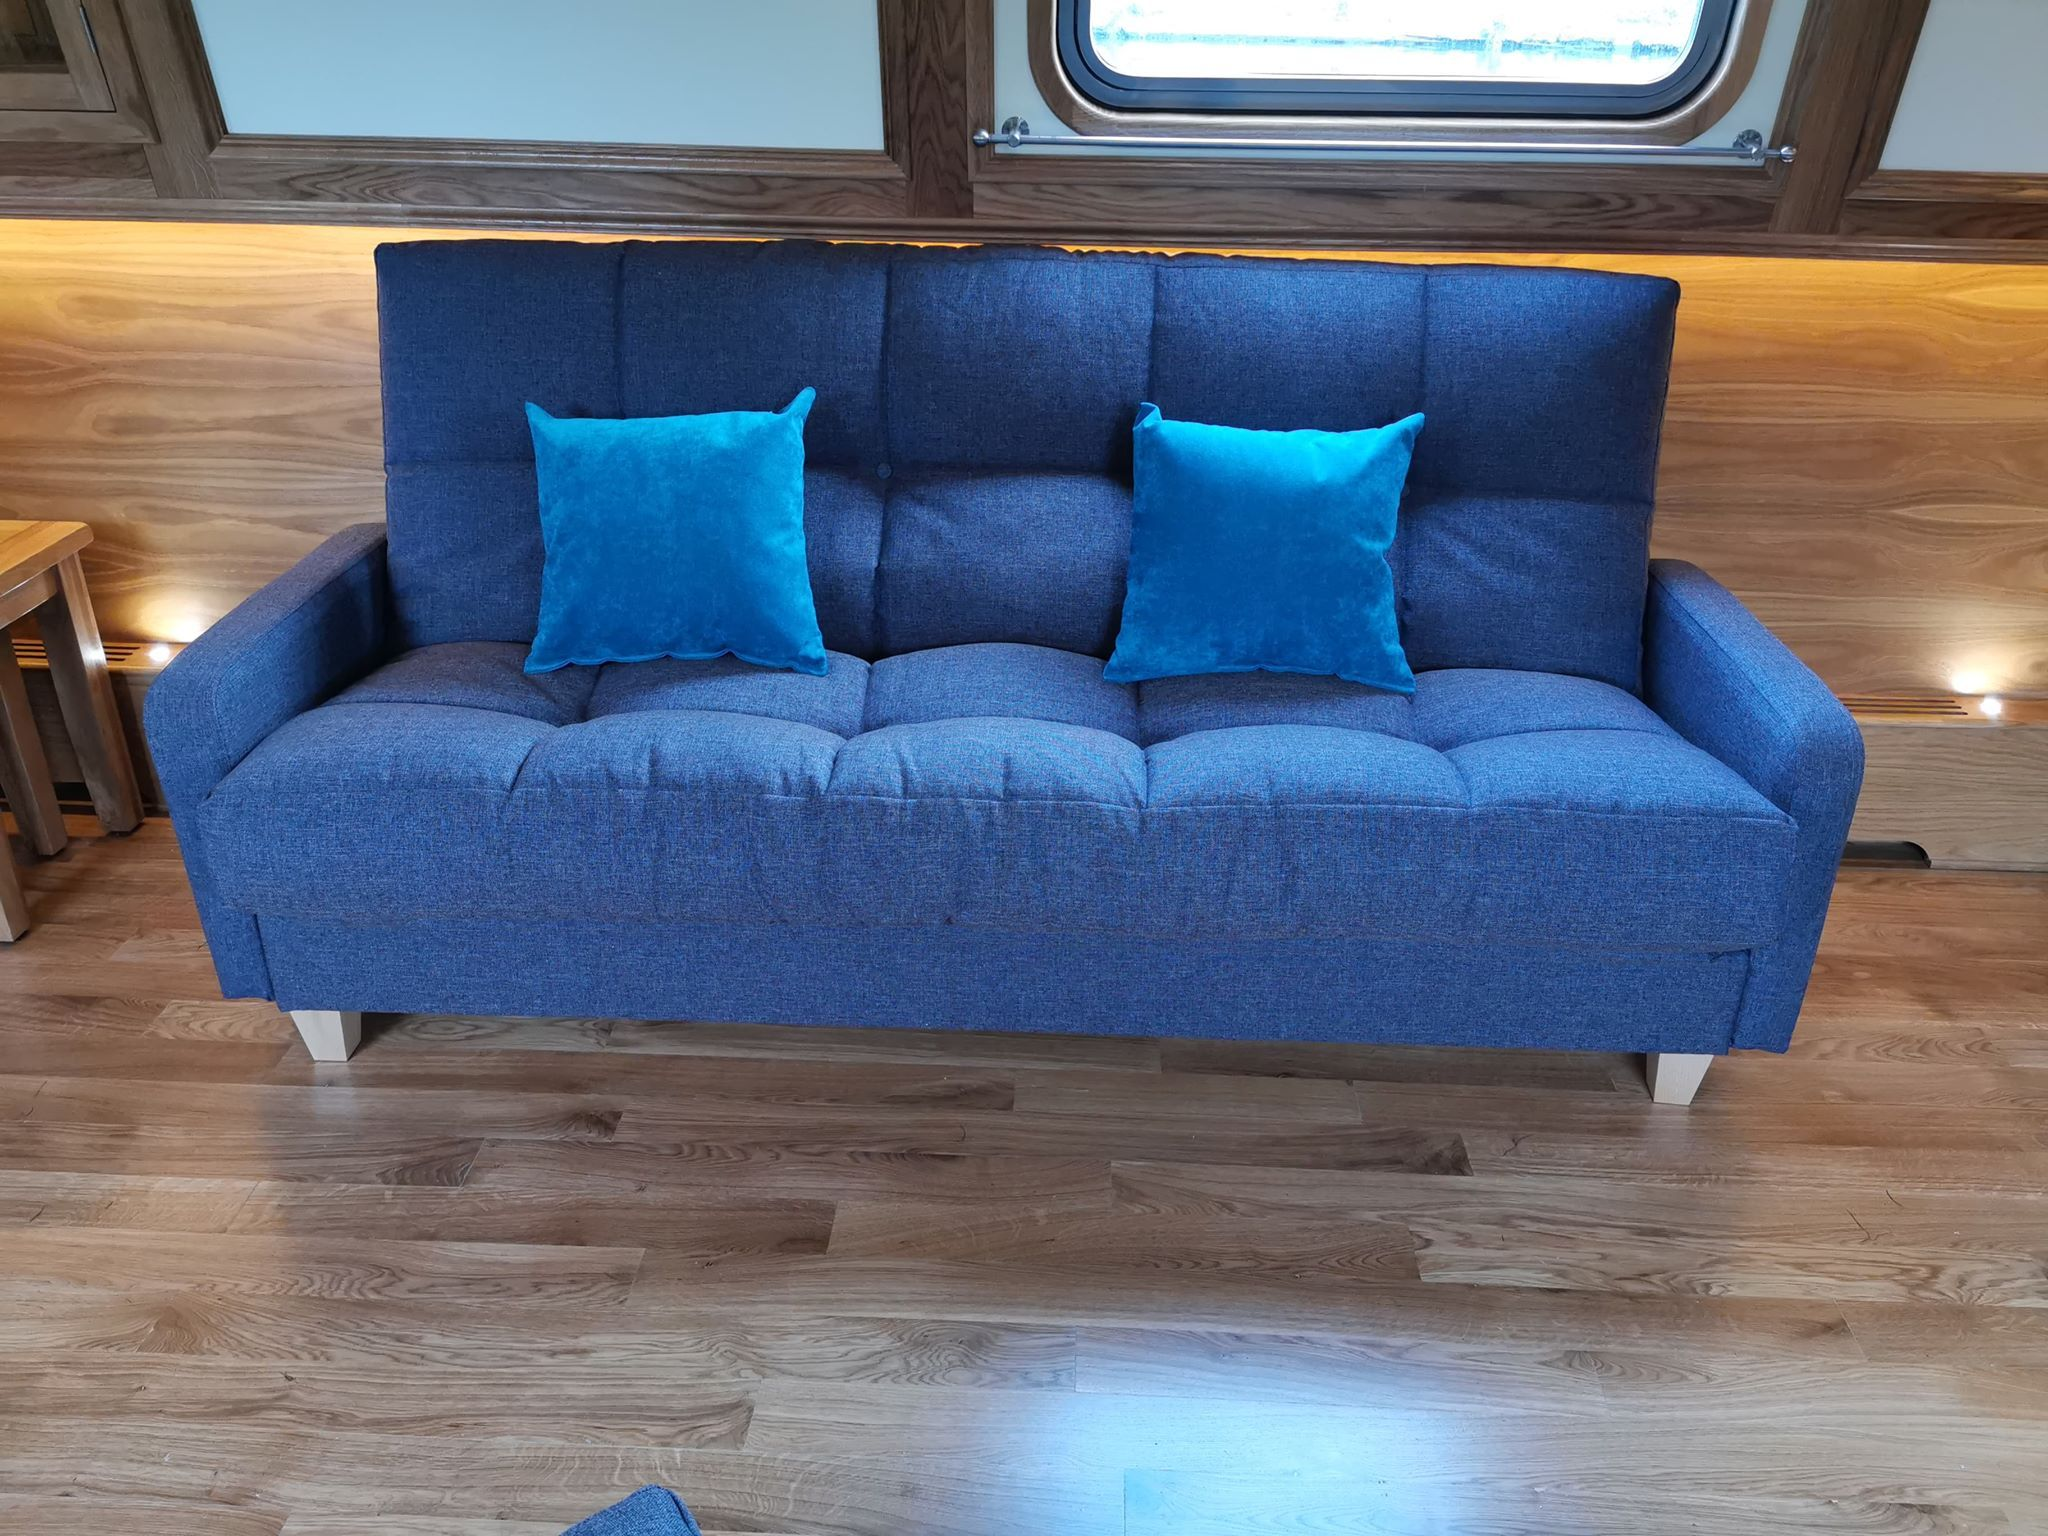 Large 3 seat sofa bed in a funky electric blue fabric